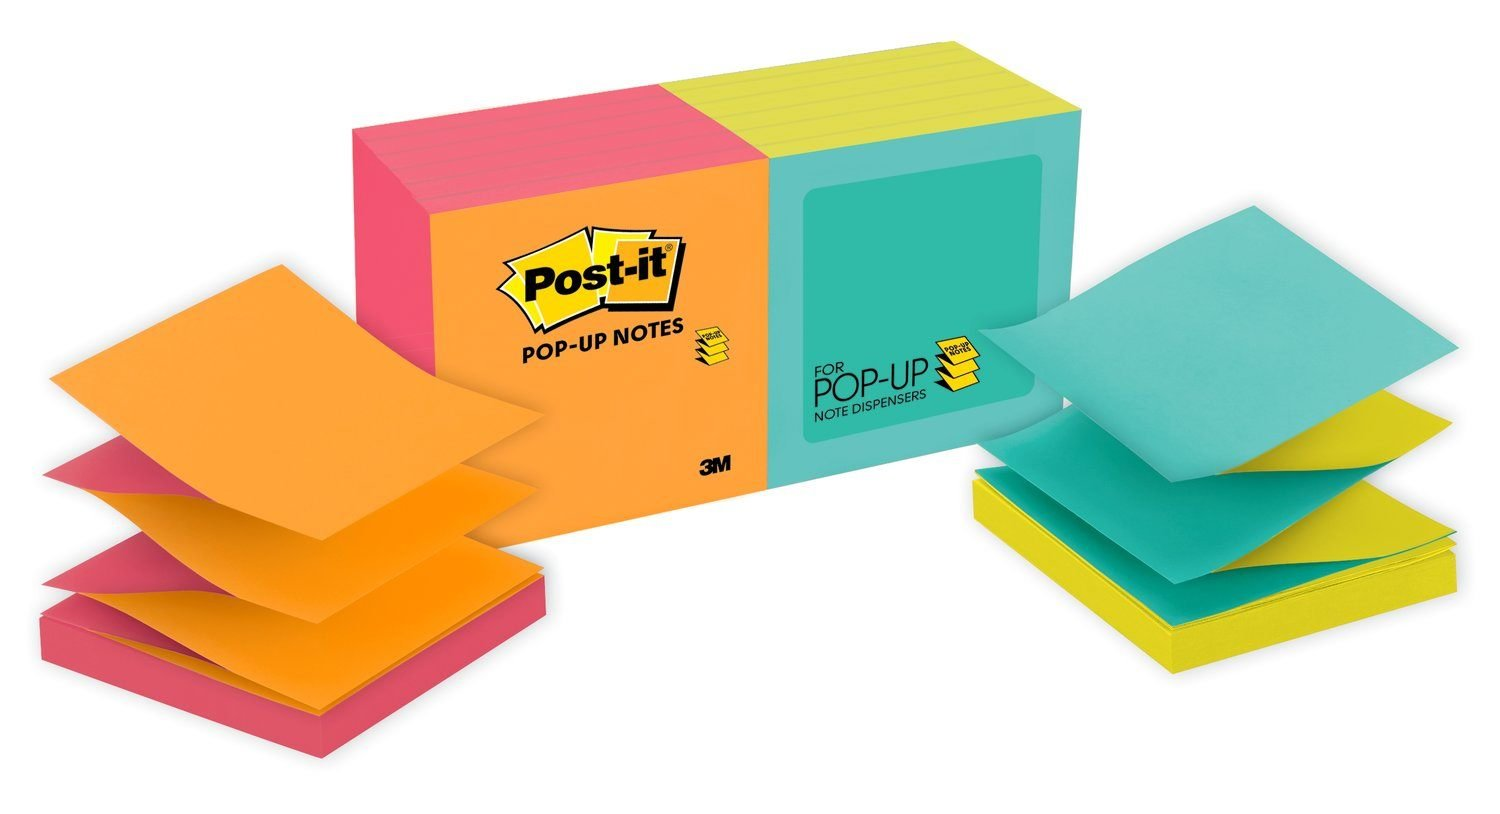 Post-it Pop-up Notes, Green, Blue, Yellow, Pink, Orange, Designed for Pop-up Note Dispensers, Call out Important Information, 3 in. x 3 in, 12 Pads/Pack, (R330-N-ALT) by Post-it